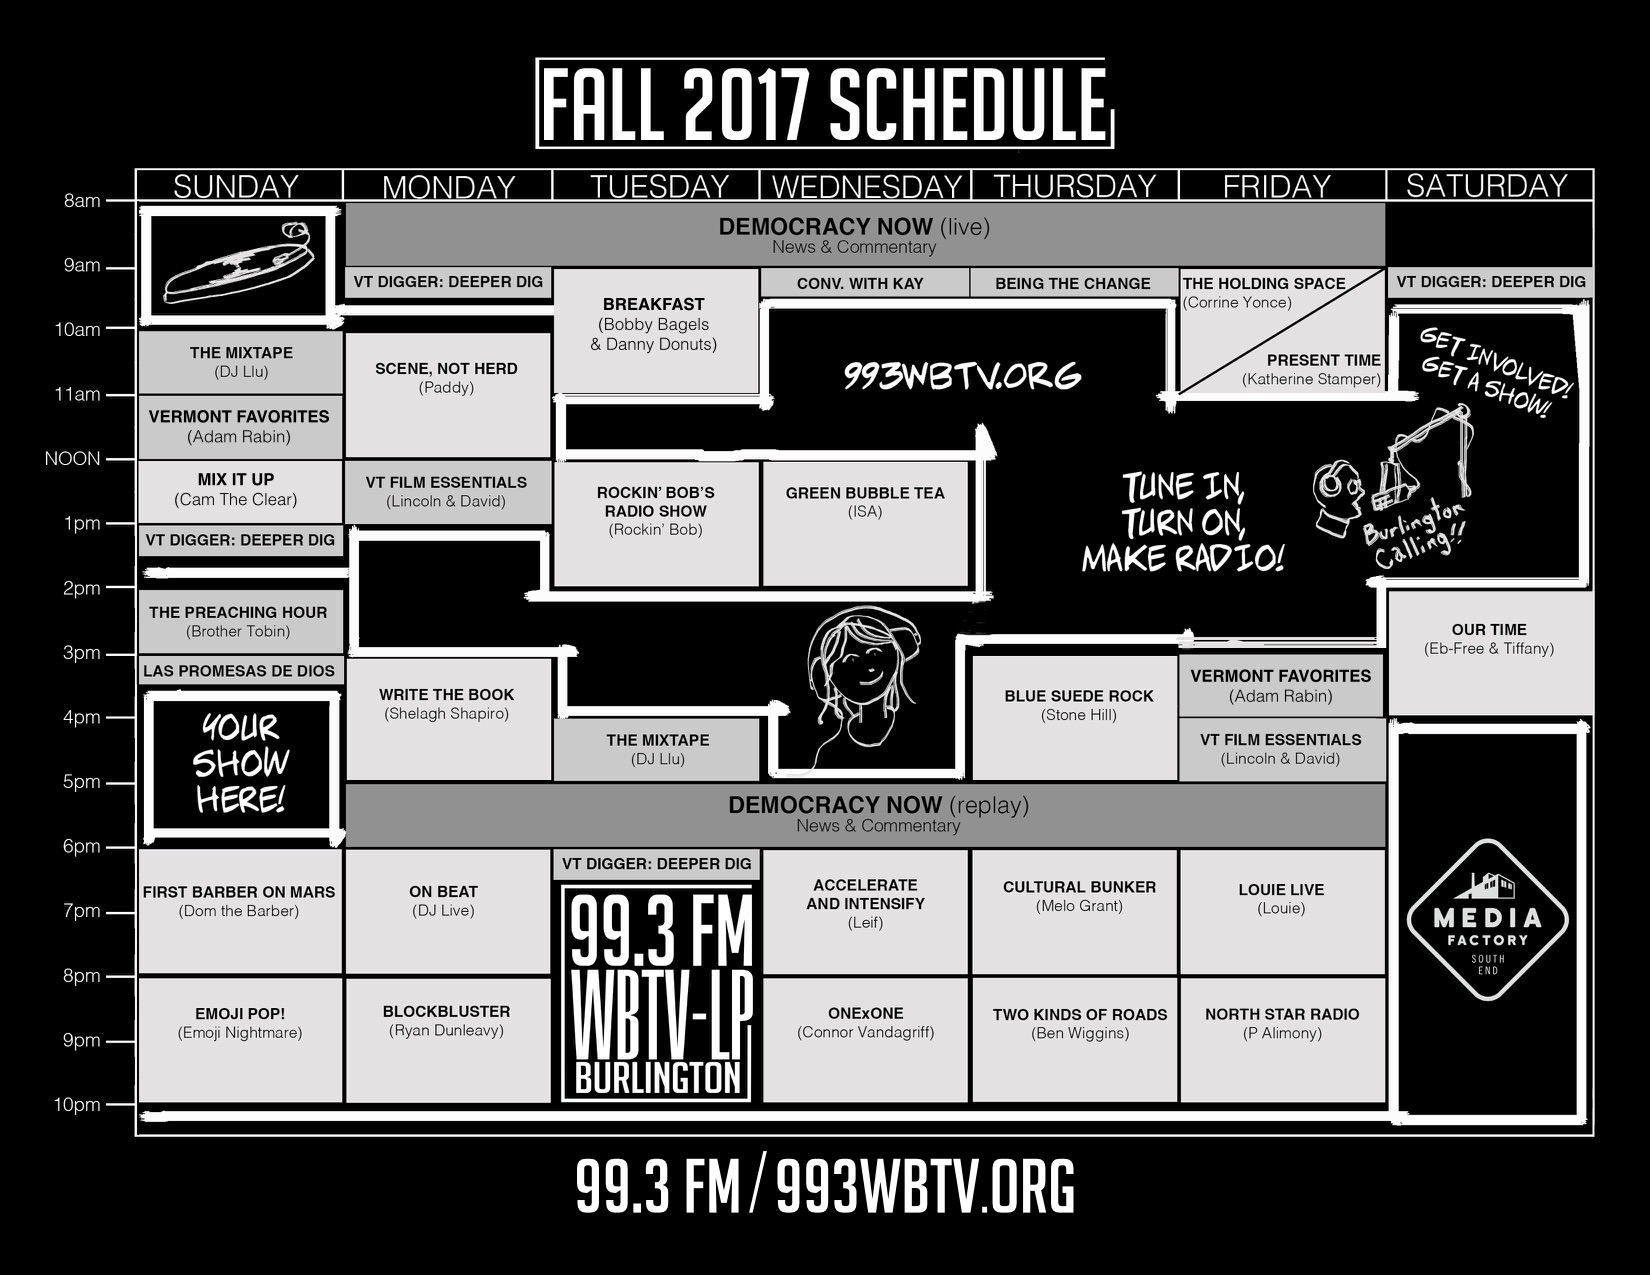 WBTV-LP Fall Schedule 2017